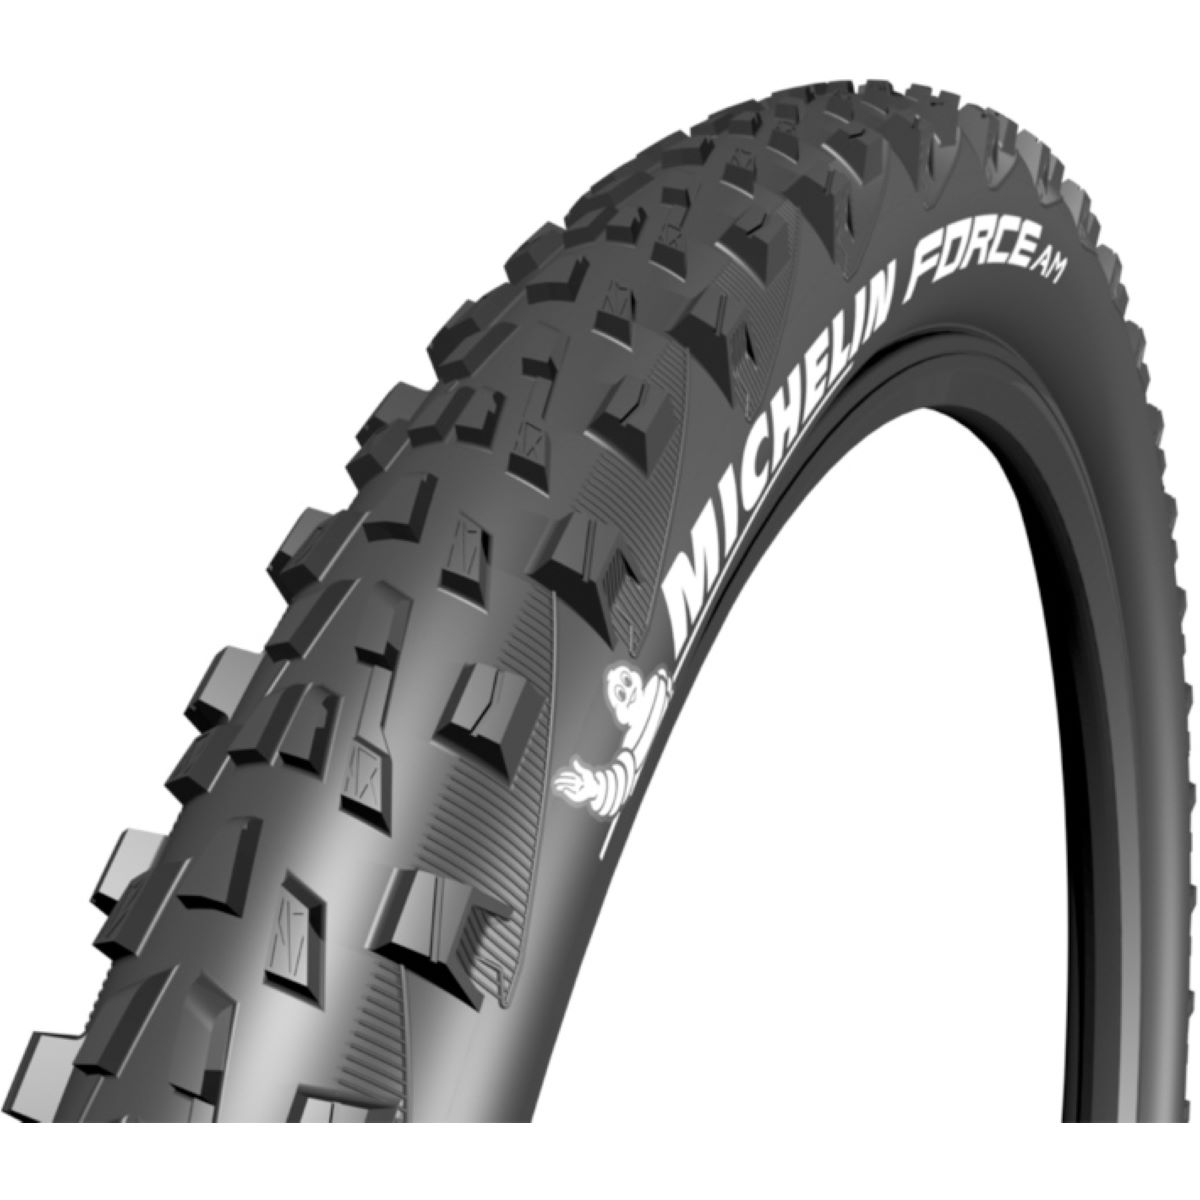 Pneu VTT Michelin Force AM Competition - 2.25' 29' Noir Pneus